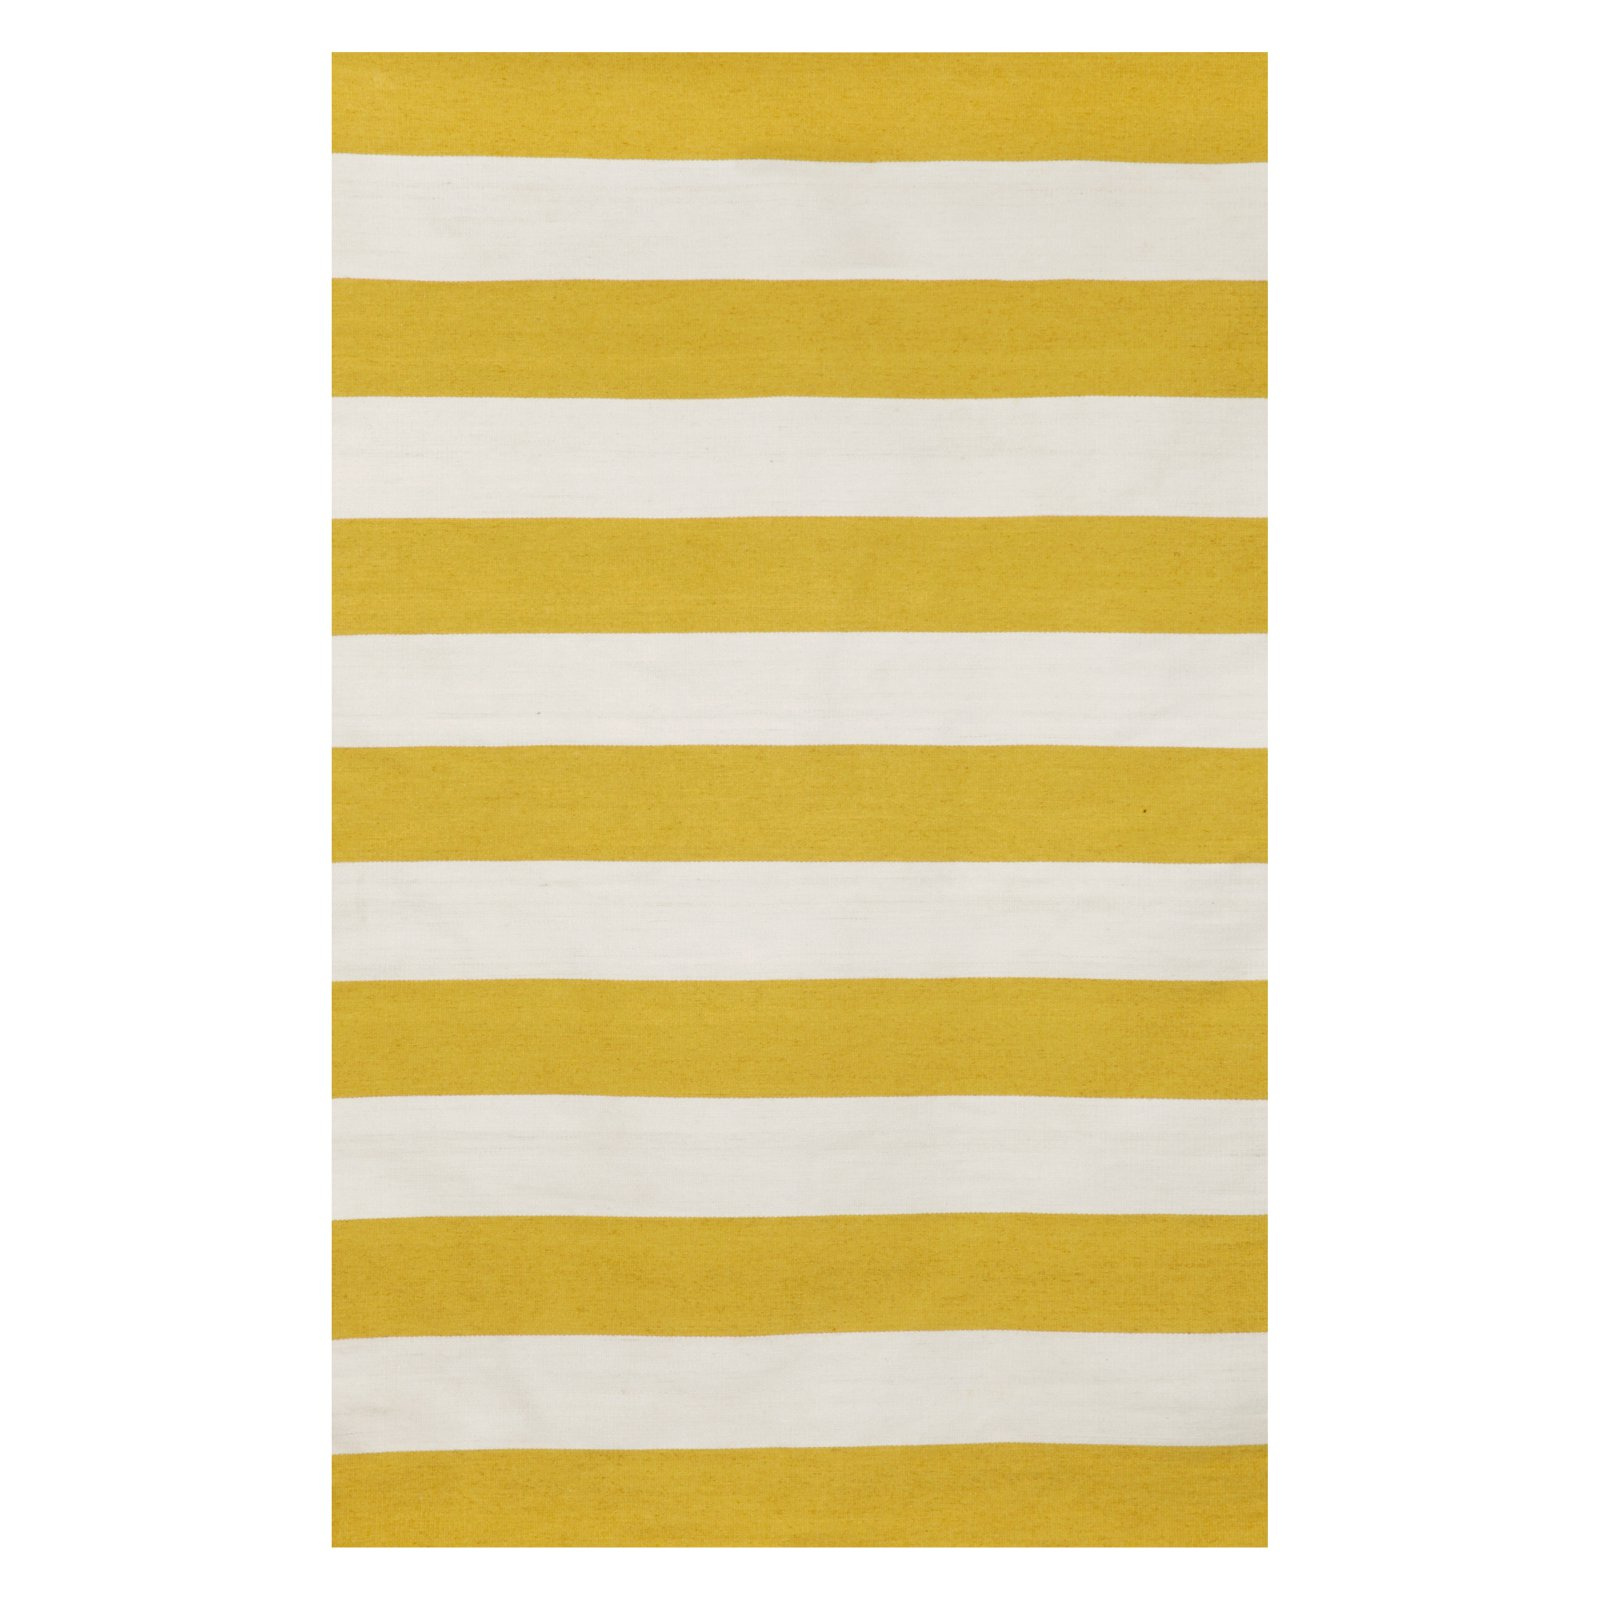 Liora Manne Sorrento 6302/09 Rugby Stripe Yellow Area Rug 7 Feet 6 Inches X 9 Feet 6 Inches